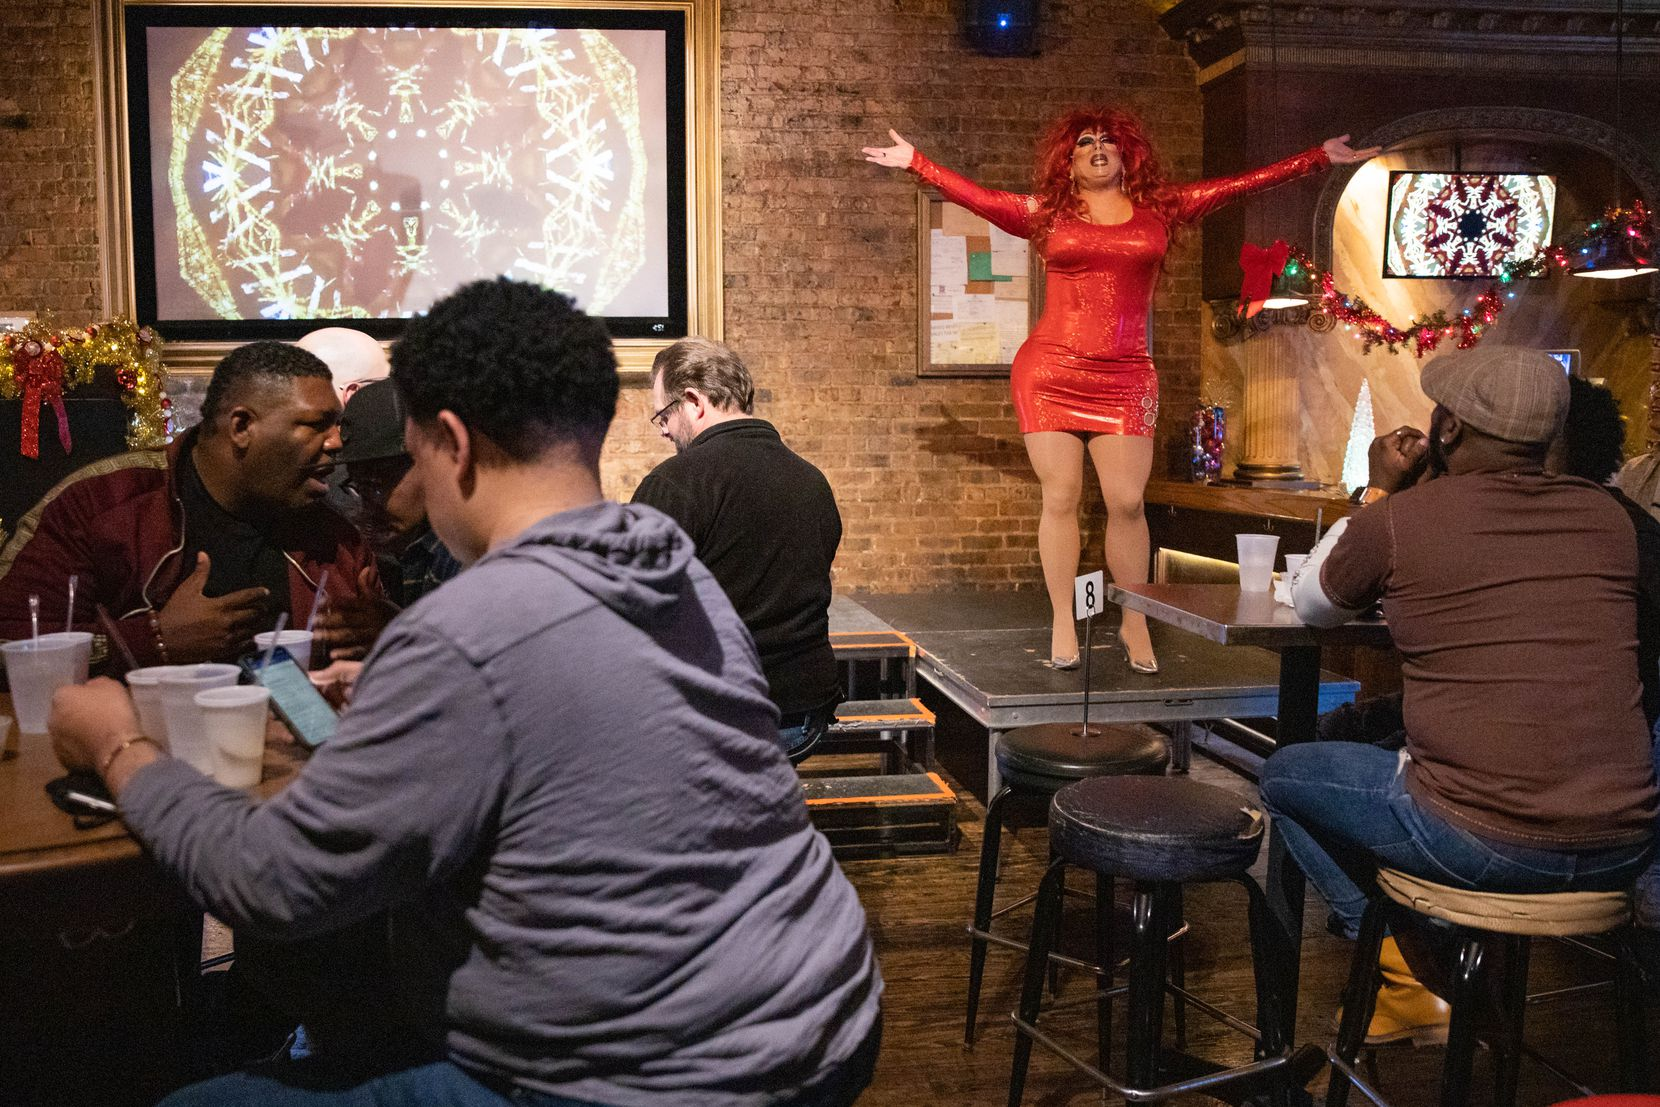 Cassie Nova gave it her all at JR's Bar and Grill in Dallas on Dec. 12, 2020, during the first drag show since pandemic restrictions began.